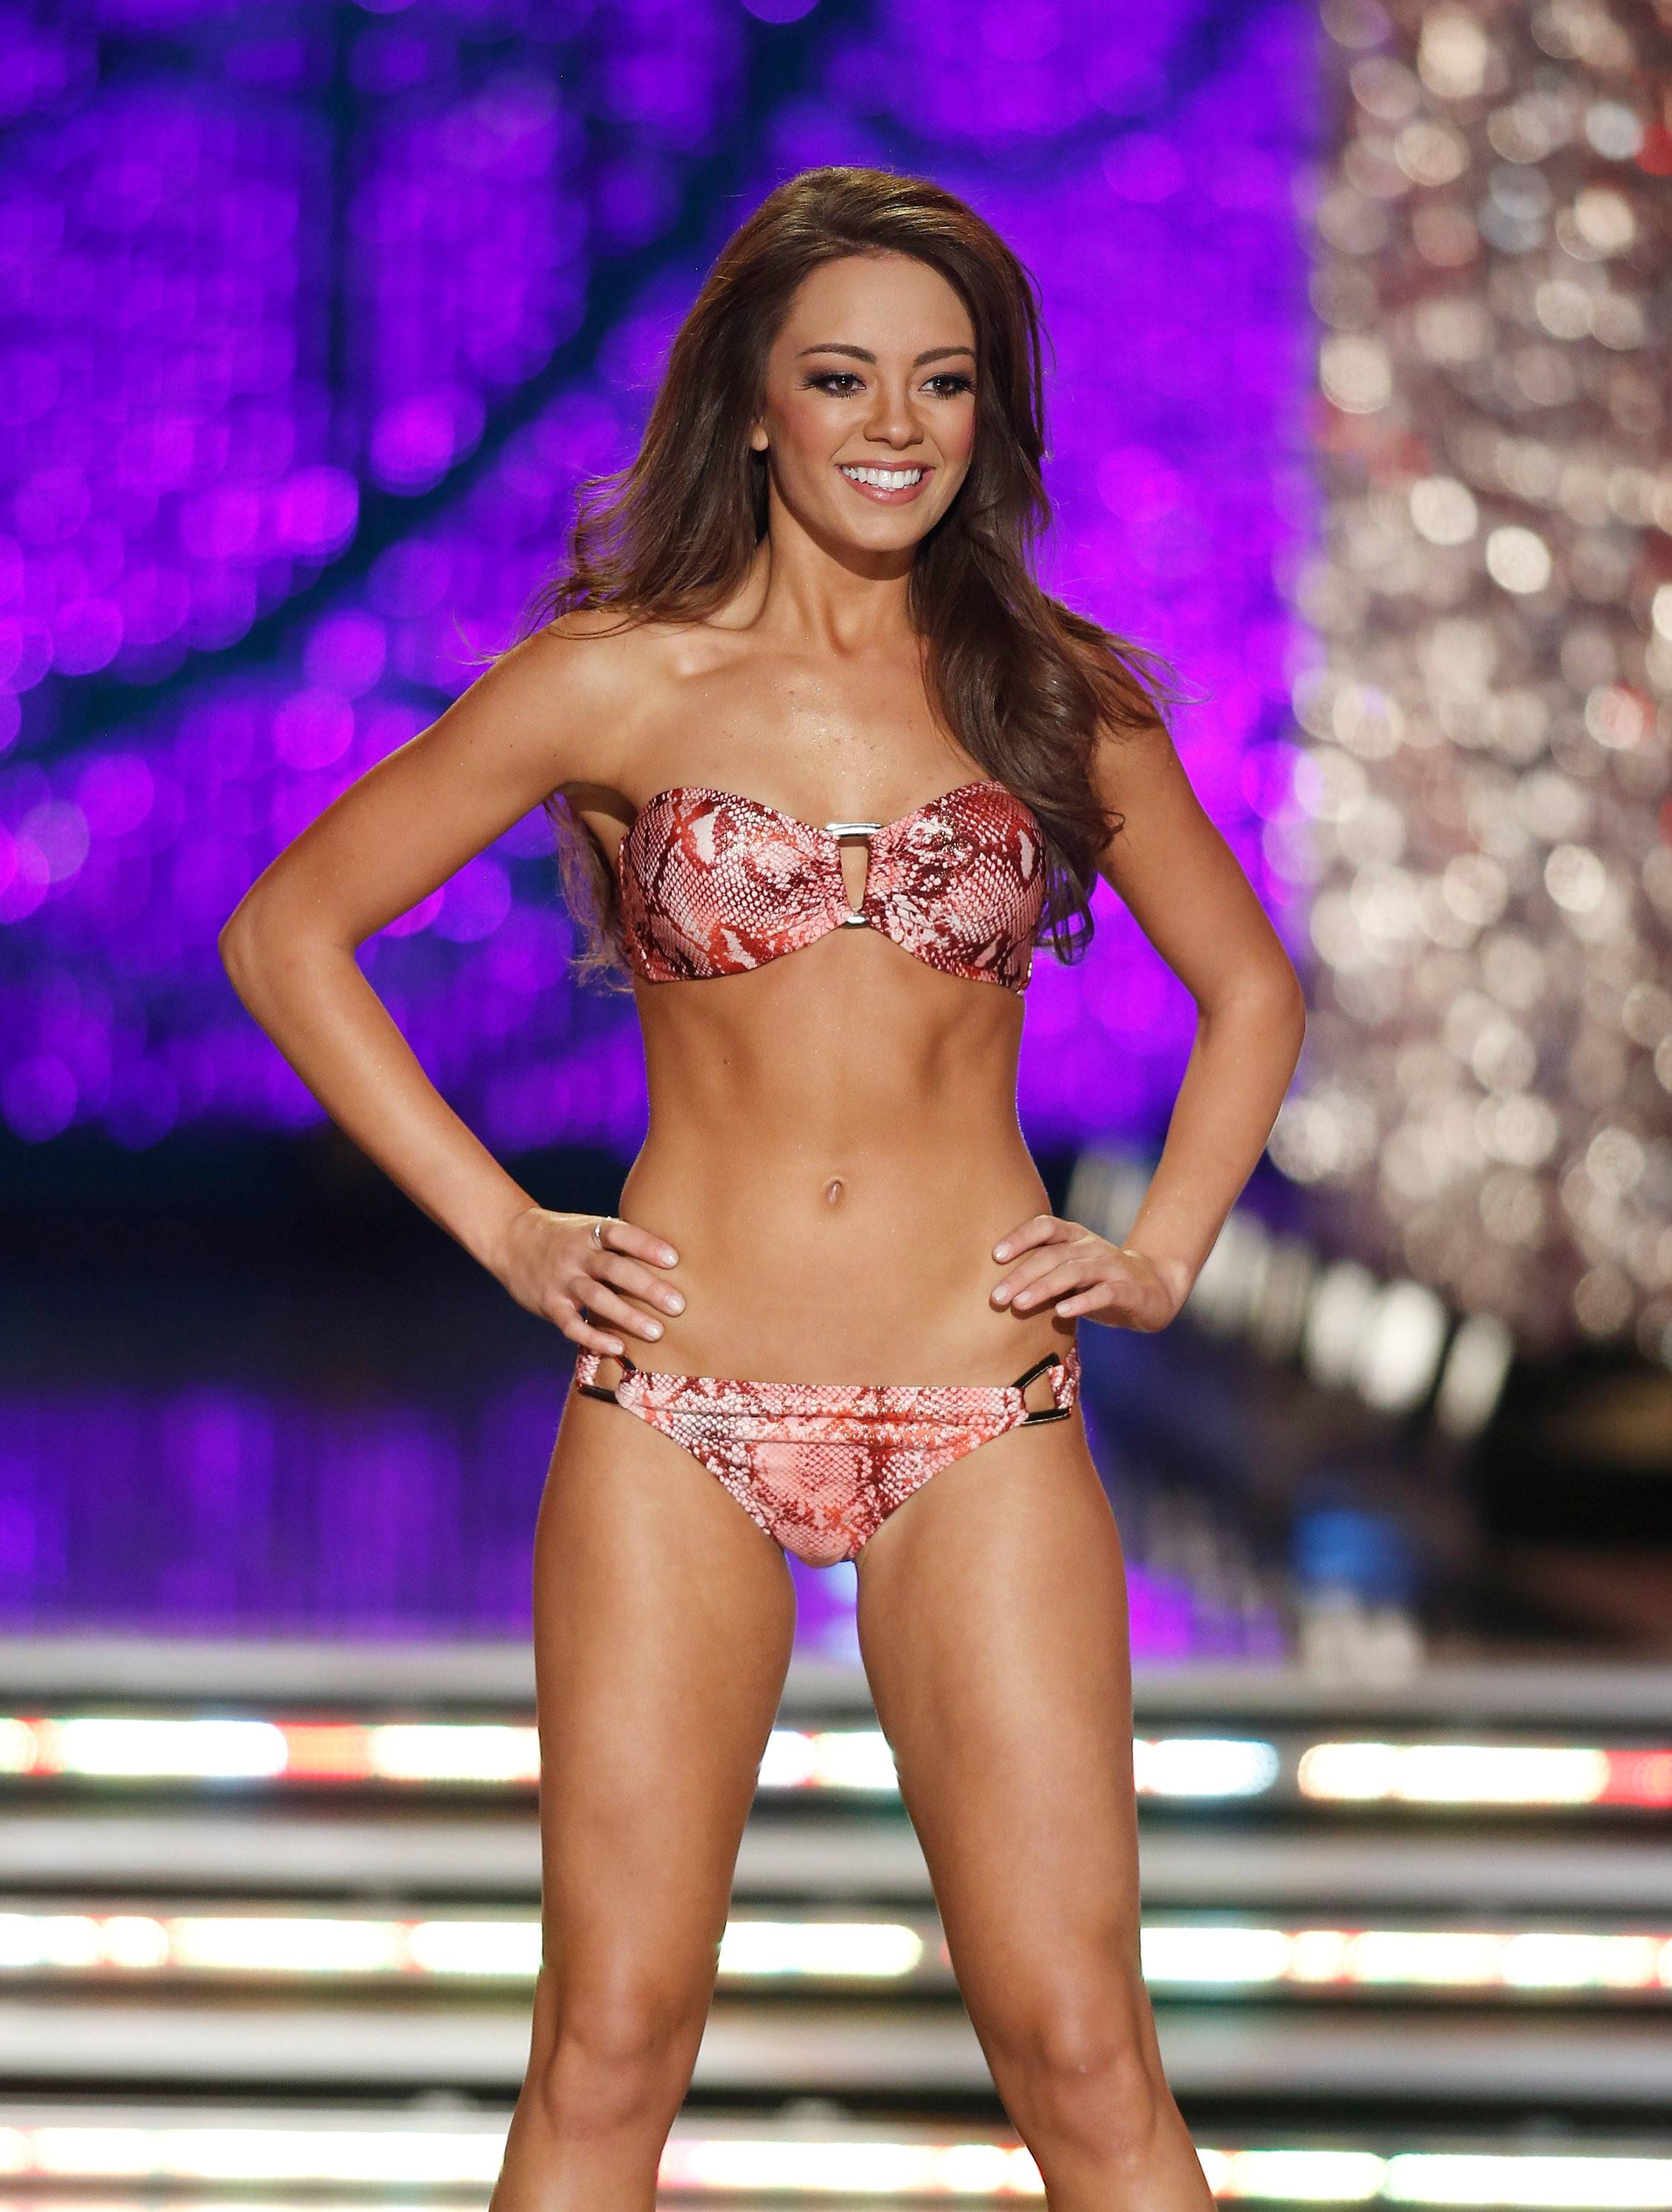 Miss Kentucky Jessica Casebolt competes in the swimsuit portion of the Miss America 2013 pageant on Saturday, Jan. 12, 2013, in Las Vegas.